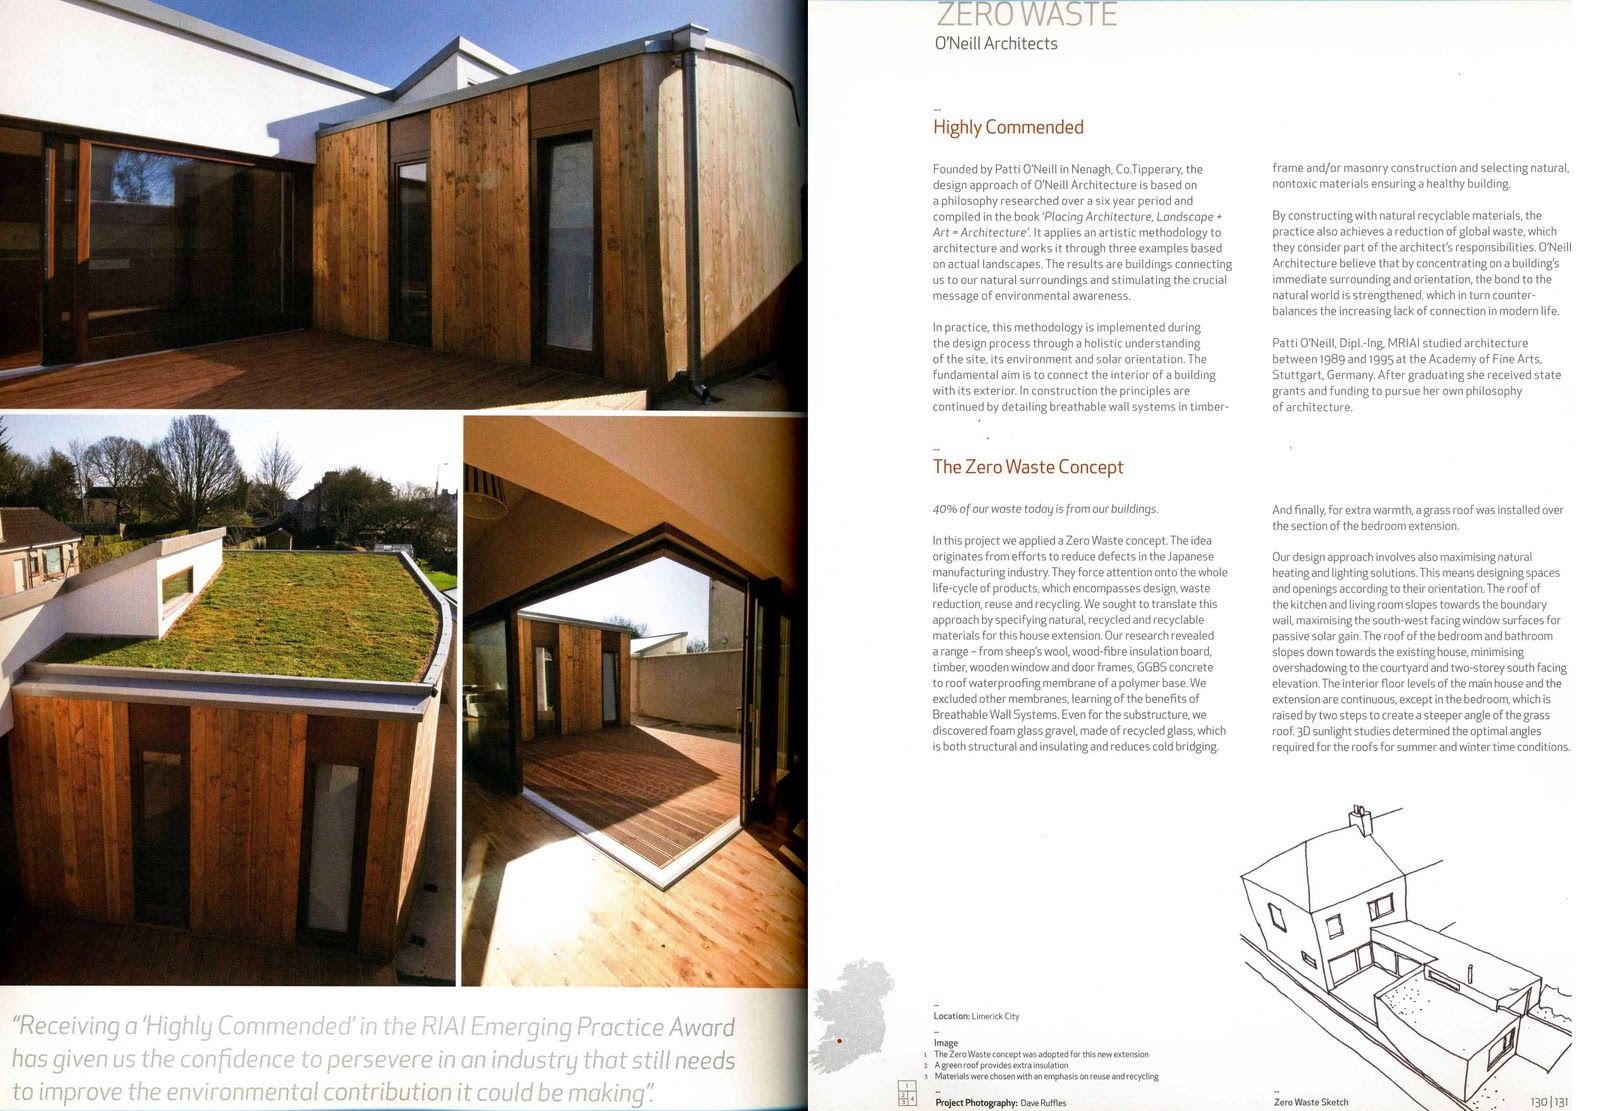 Zero Waste RIAI Annual Review 2011